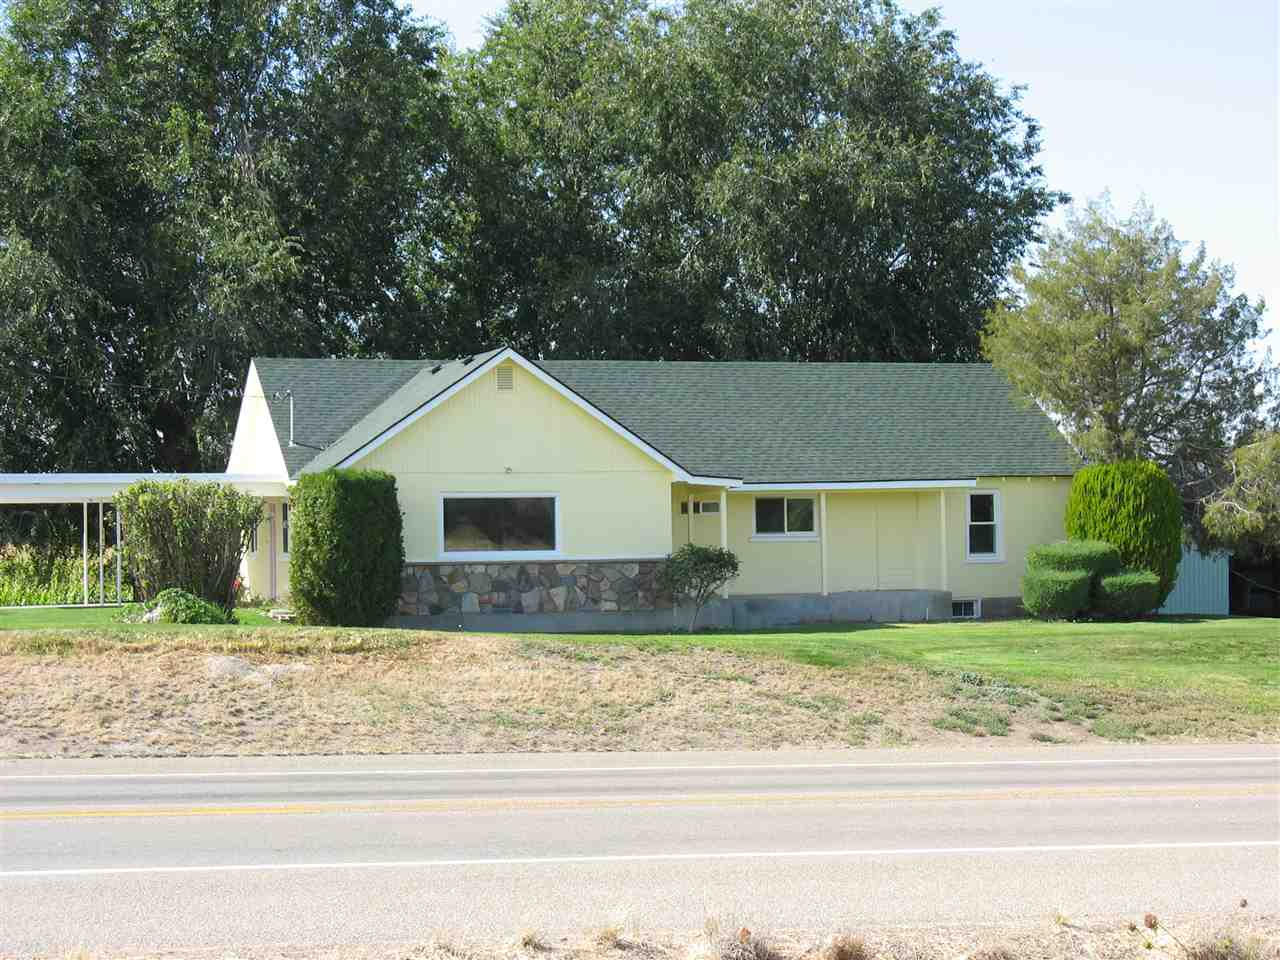 Single Family Home for Sale at 32925 Hwy 95 32925 Hwy 95 Parma, Idaho 83660